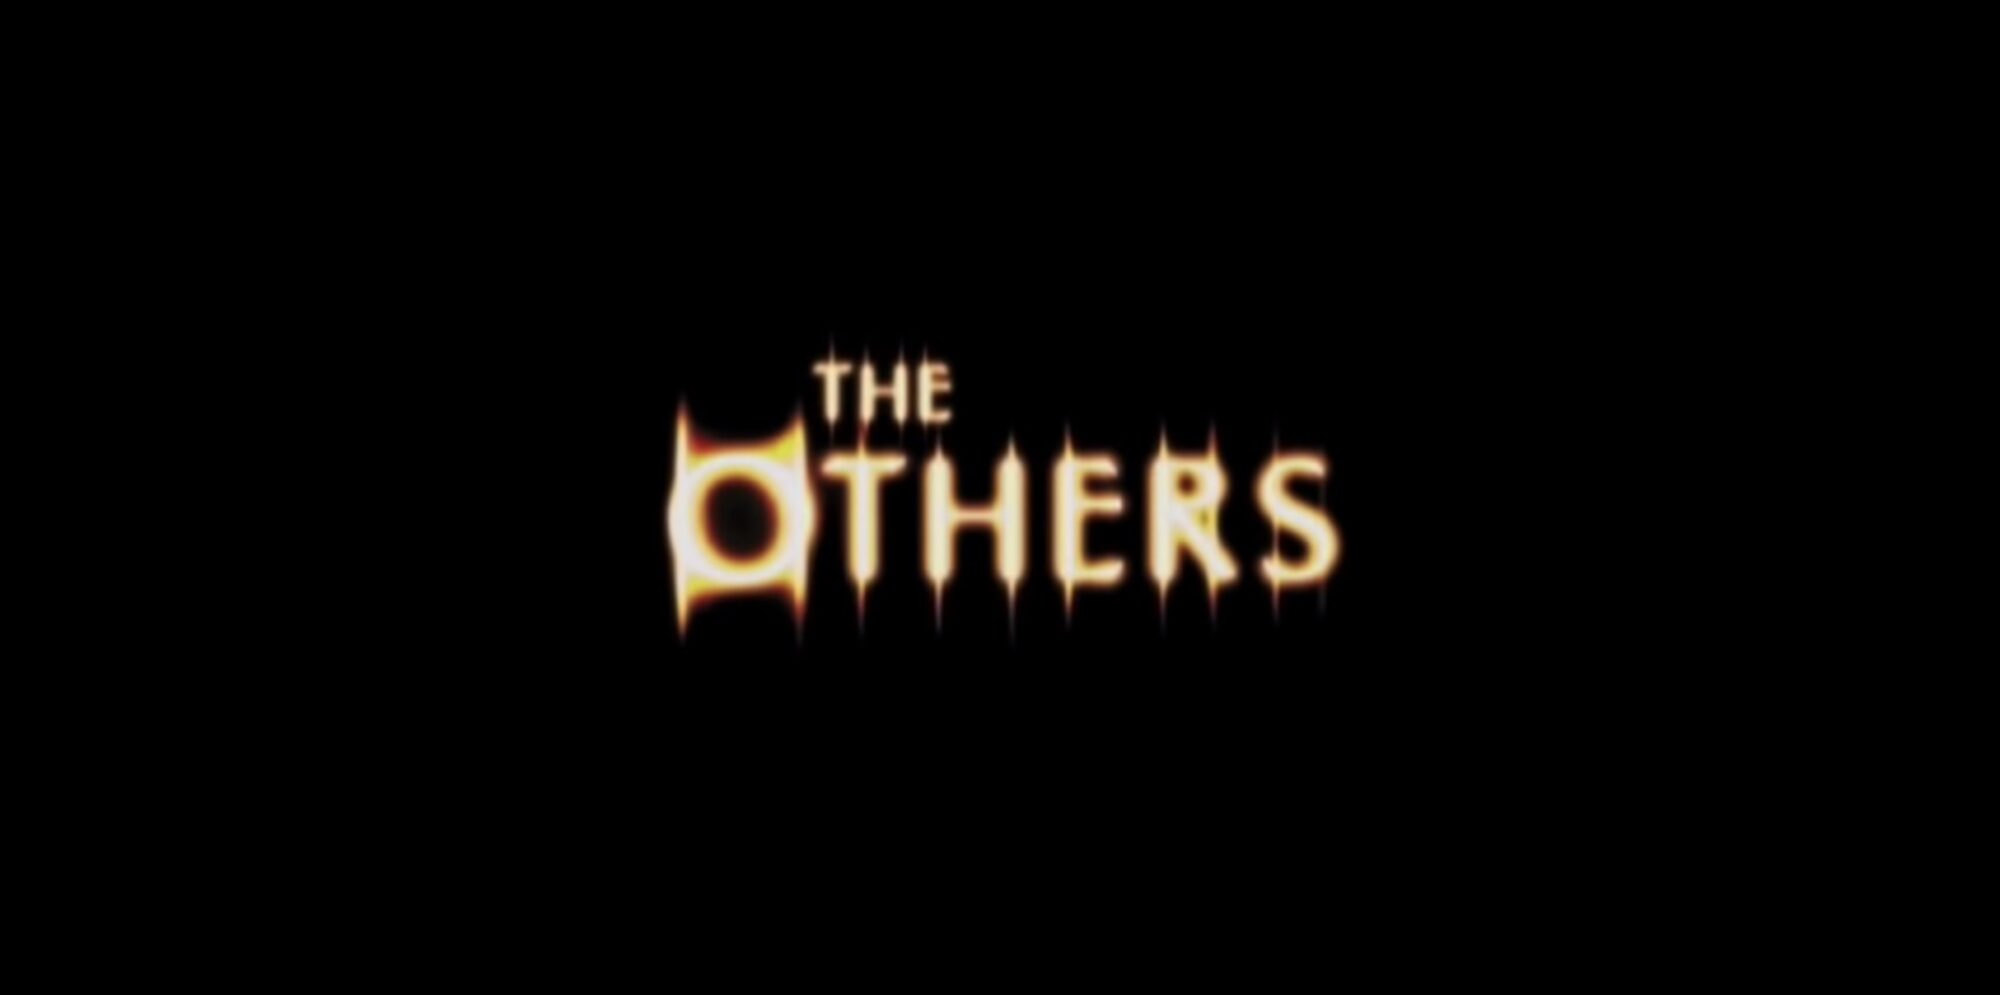 The others title card